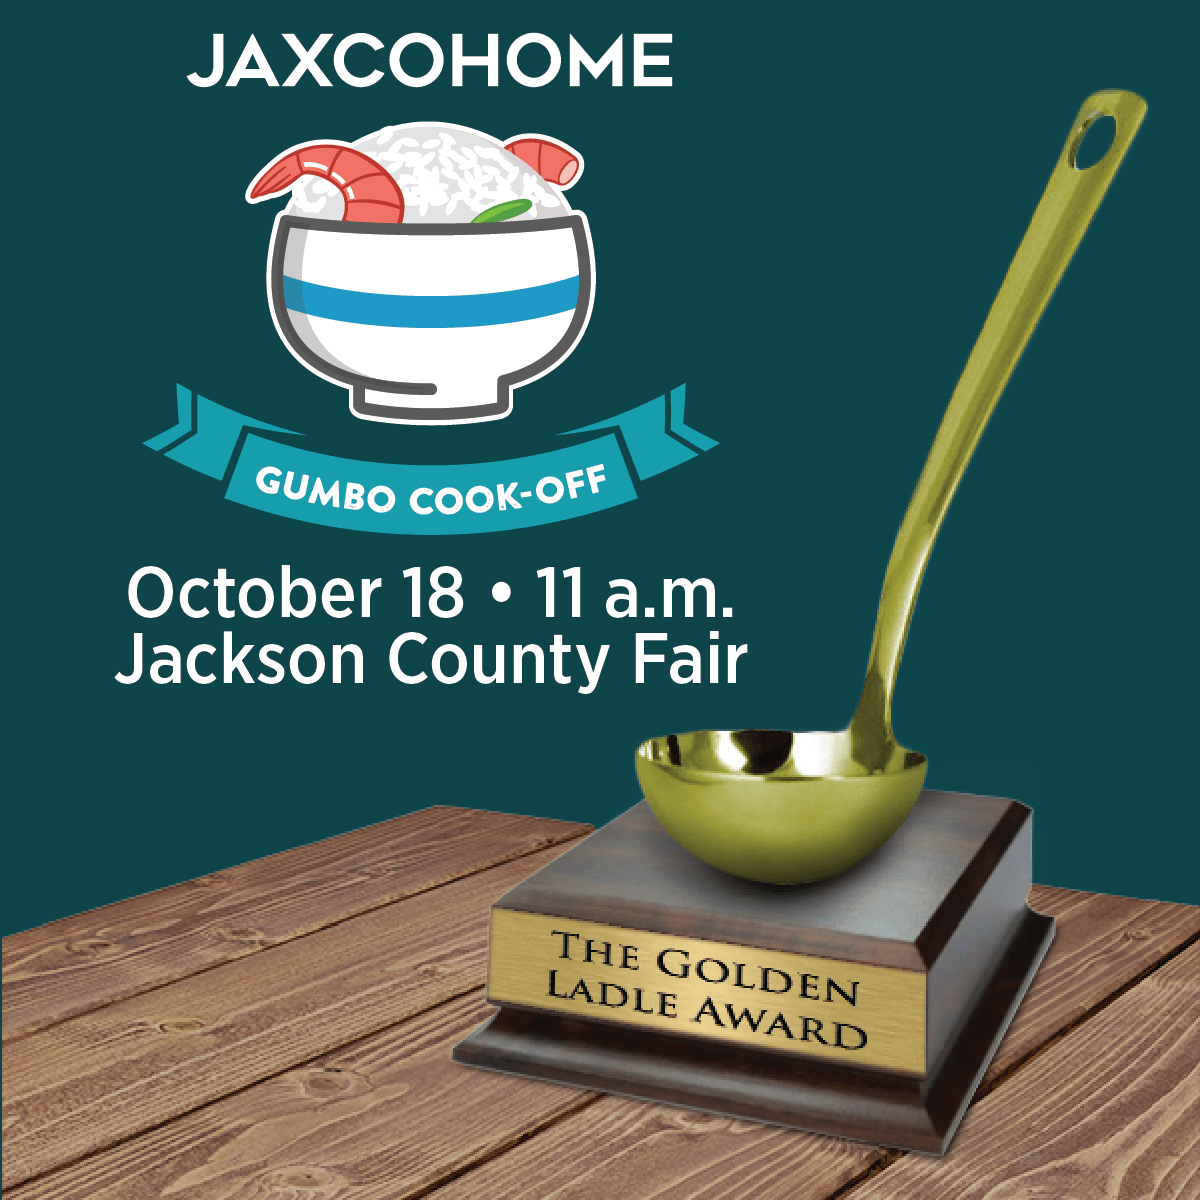 fb-post Local Judges to Be Featured at JaxCoHome Gumbo Contest